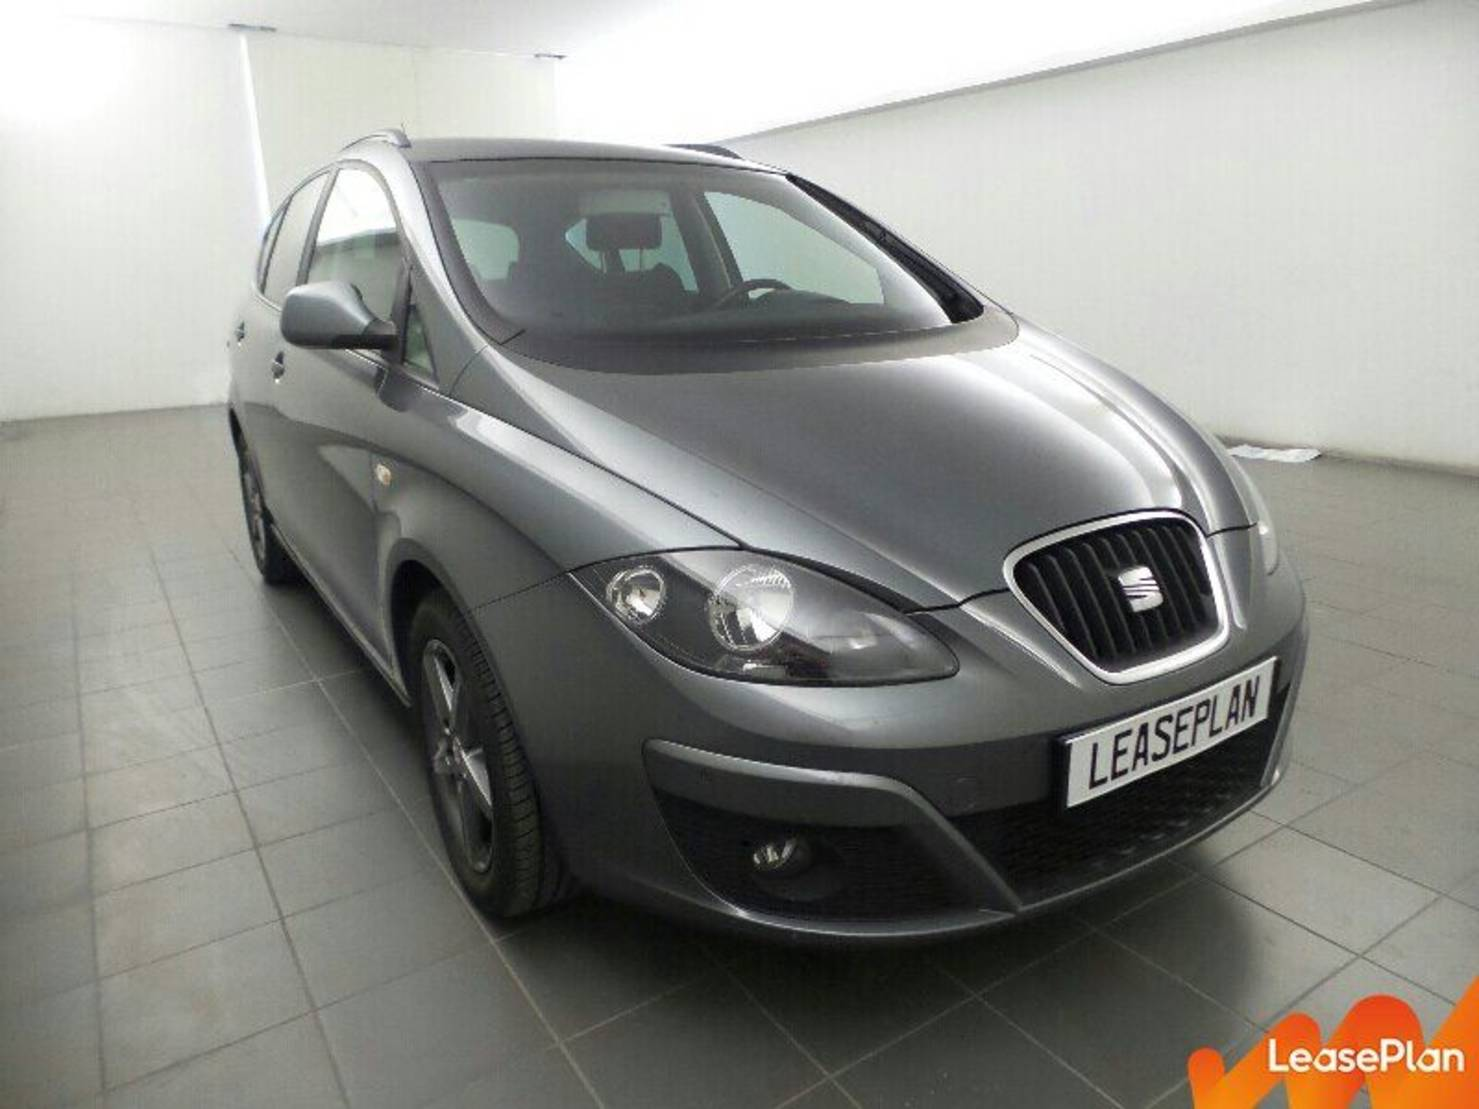 Seat Altea XL 1.6 TDI 105, I-Tech DSG detail2